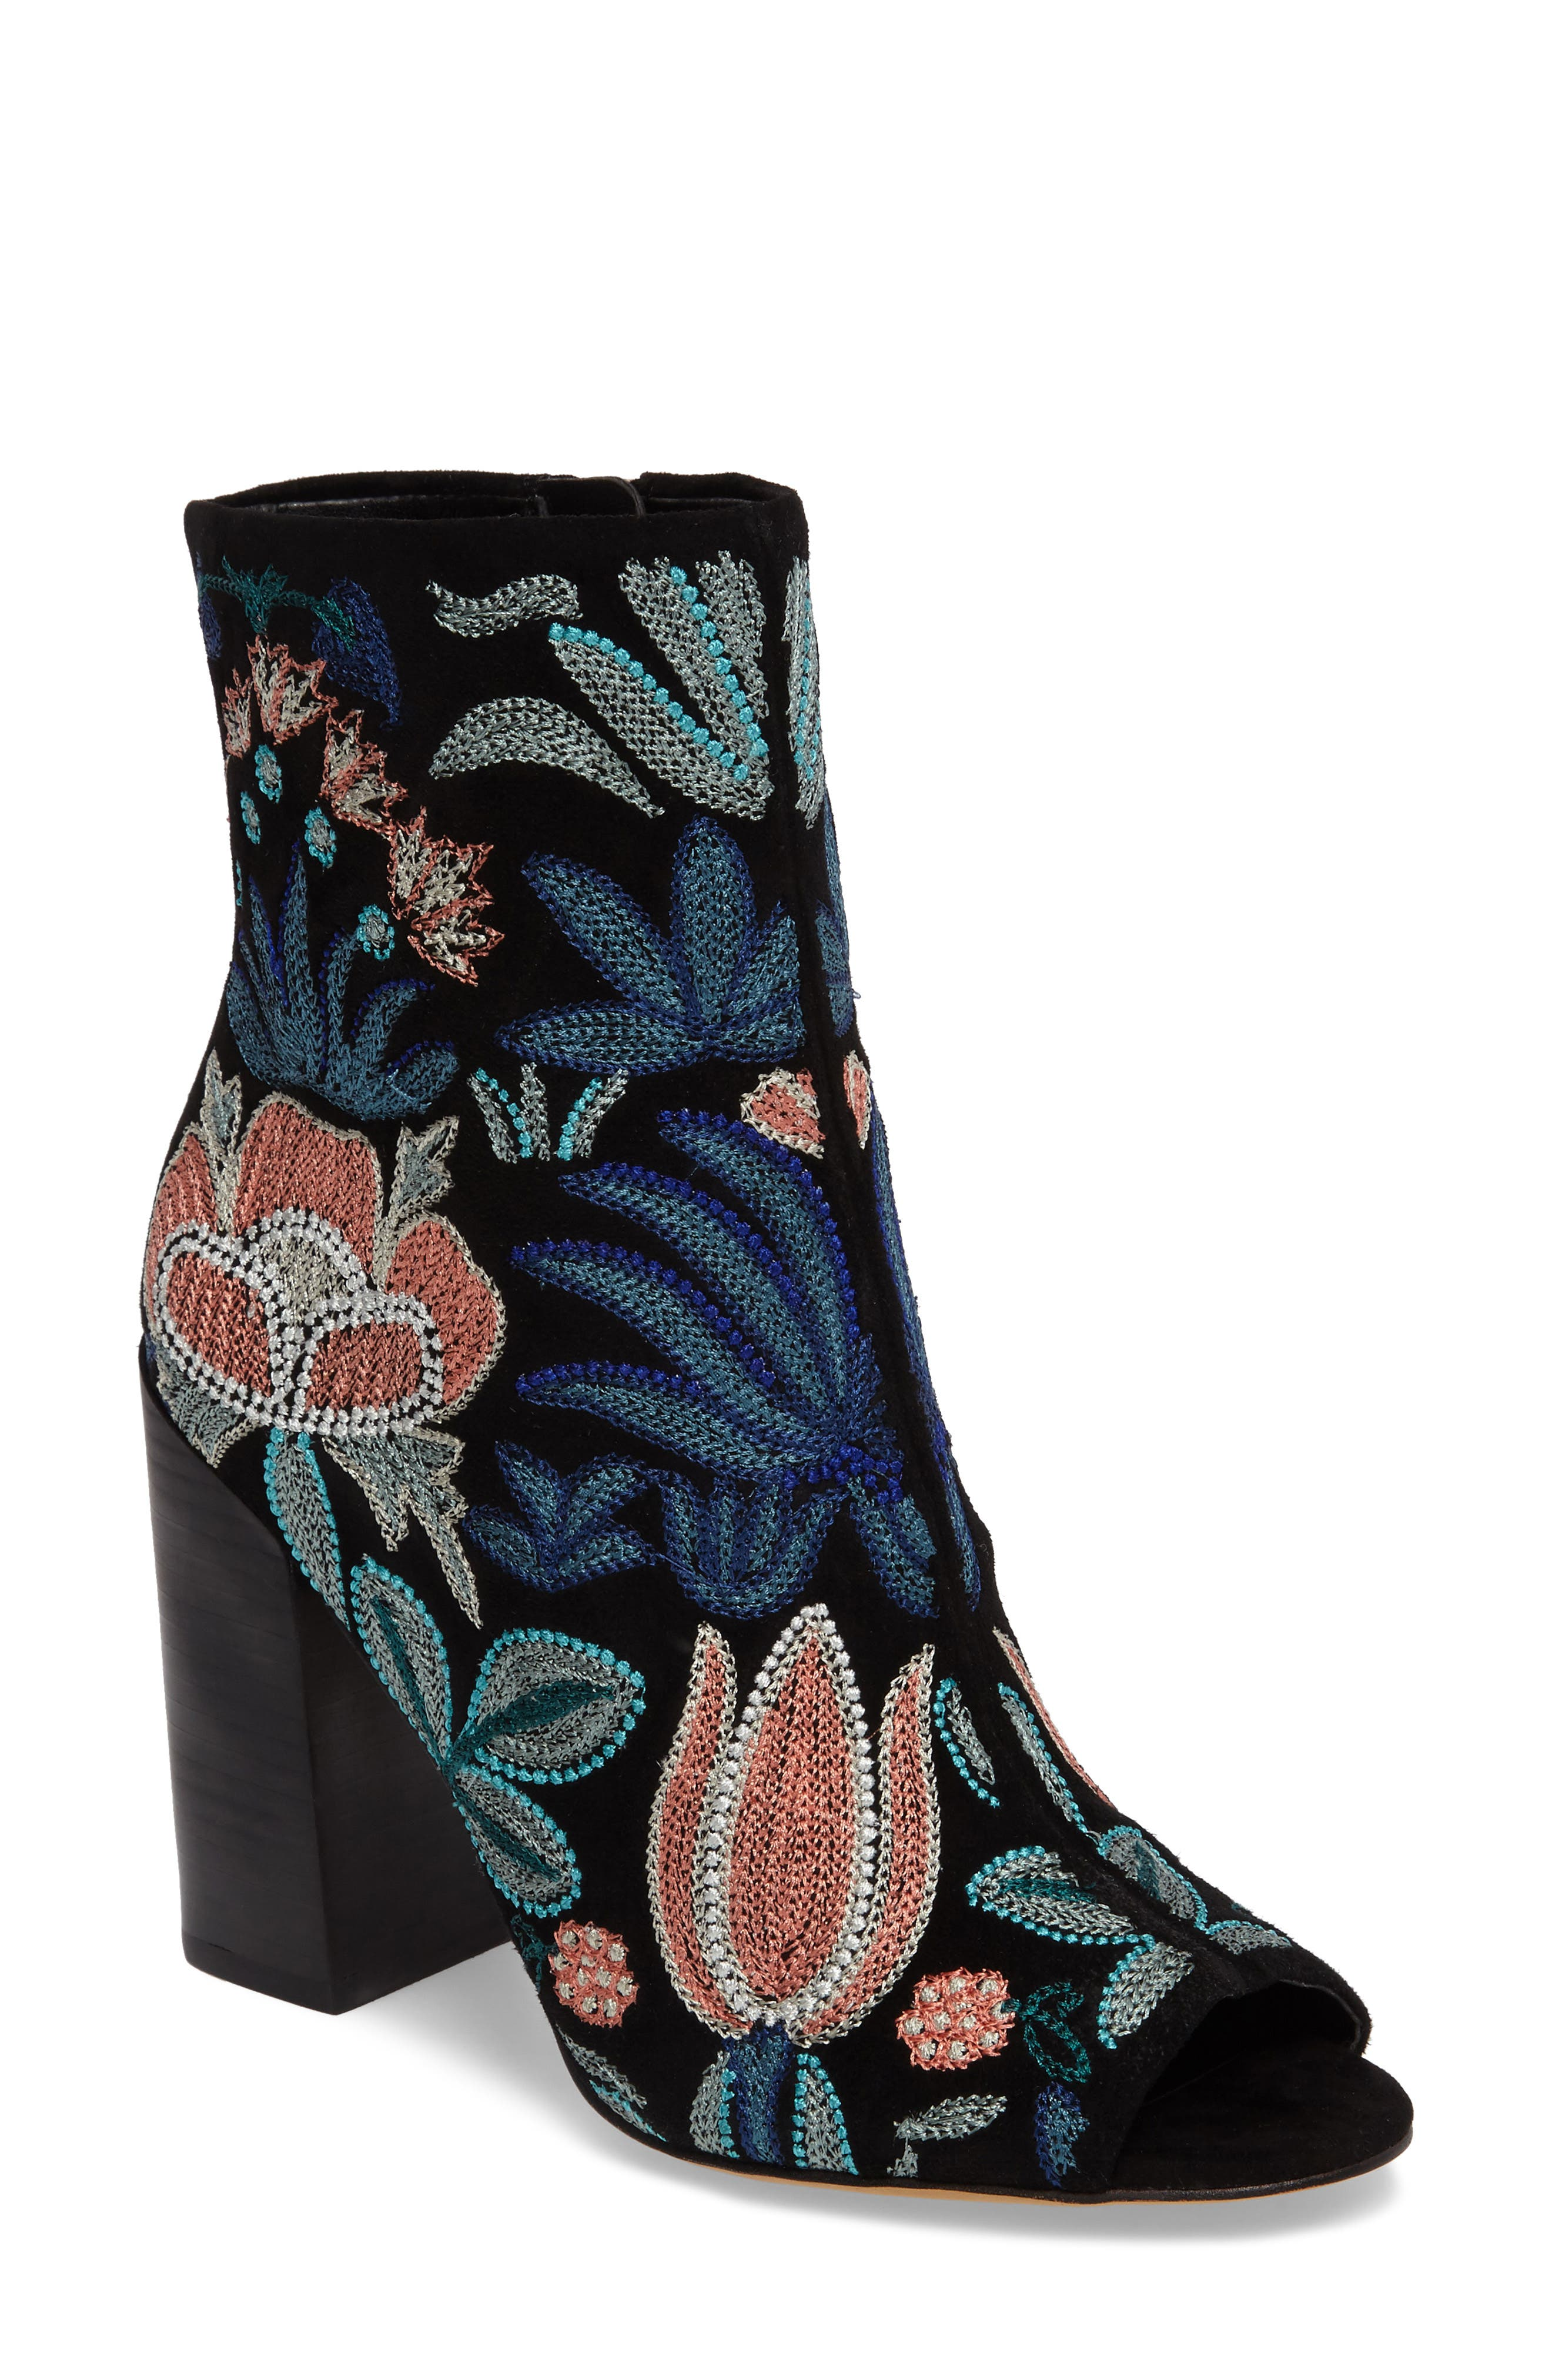 Alternate Image 1 Selected - Rebecca Minkoff Billie Floral Open Toe Bootie (Women)